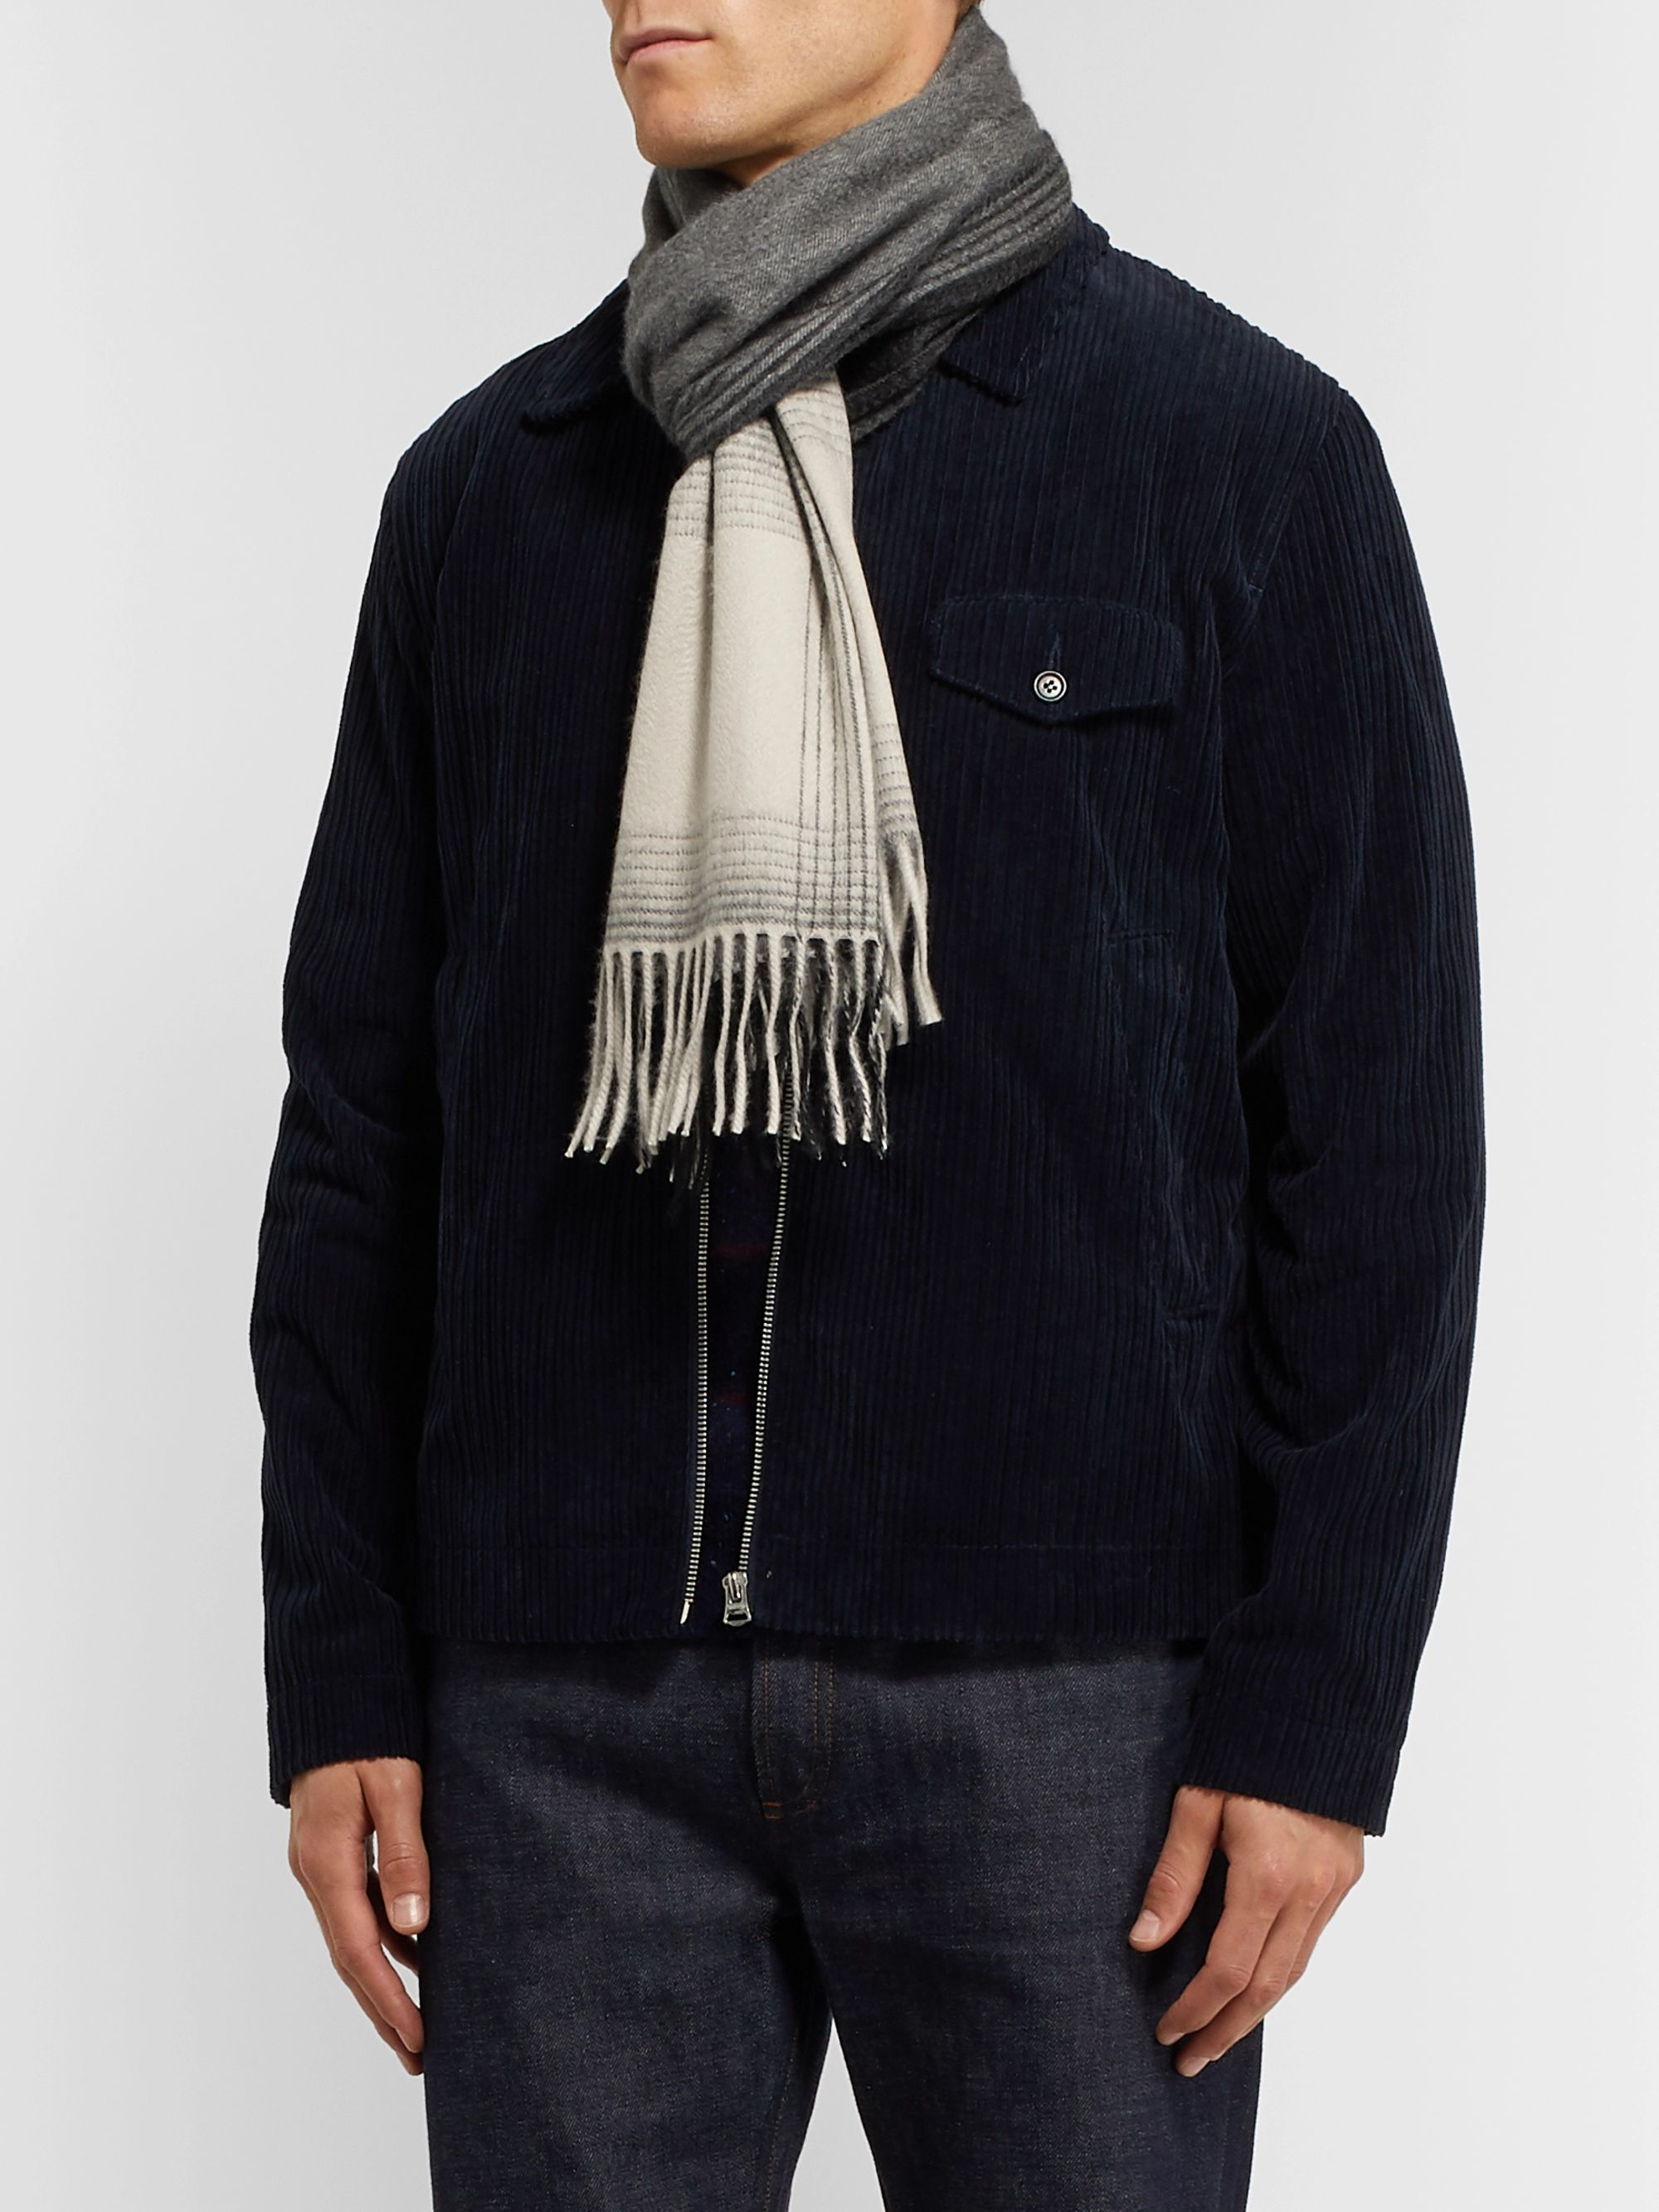 Begg & Co Arran Reversible Fringed Cashmere Scarf